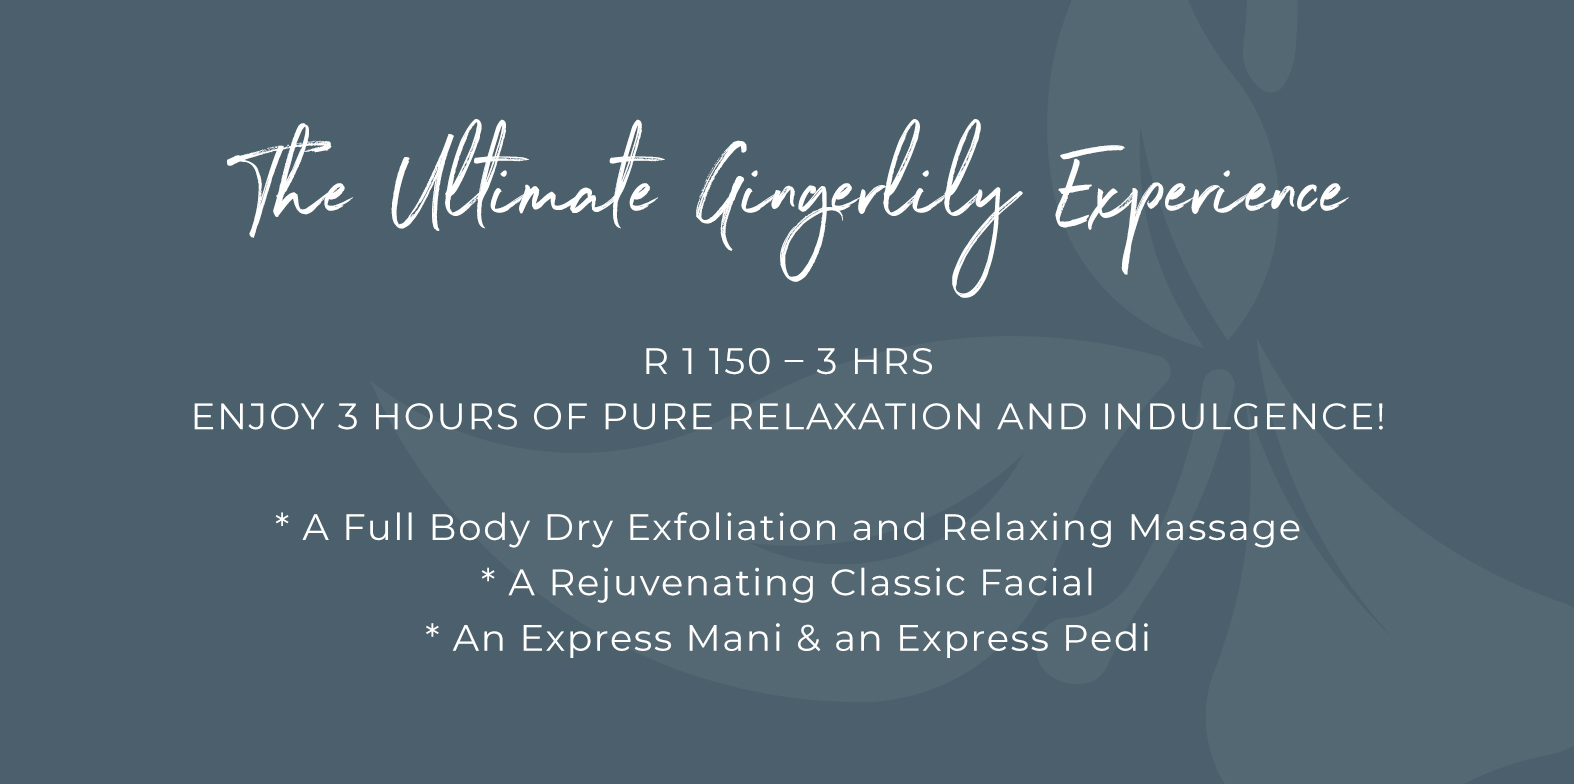 The ultimate Gingerlily experience is three hours of pure relaxation. Don't miss out!